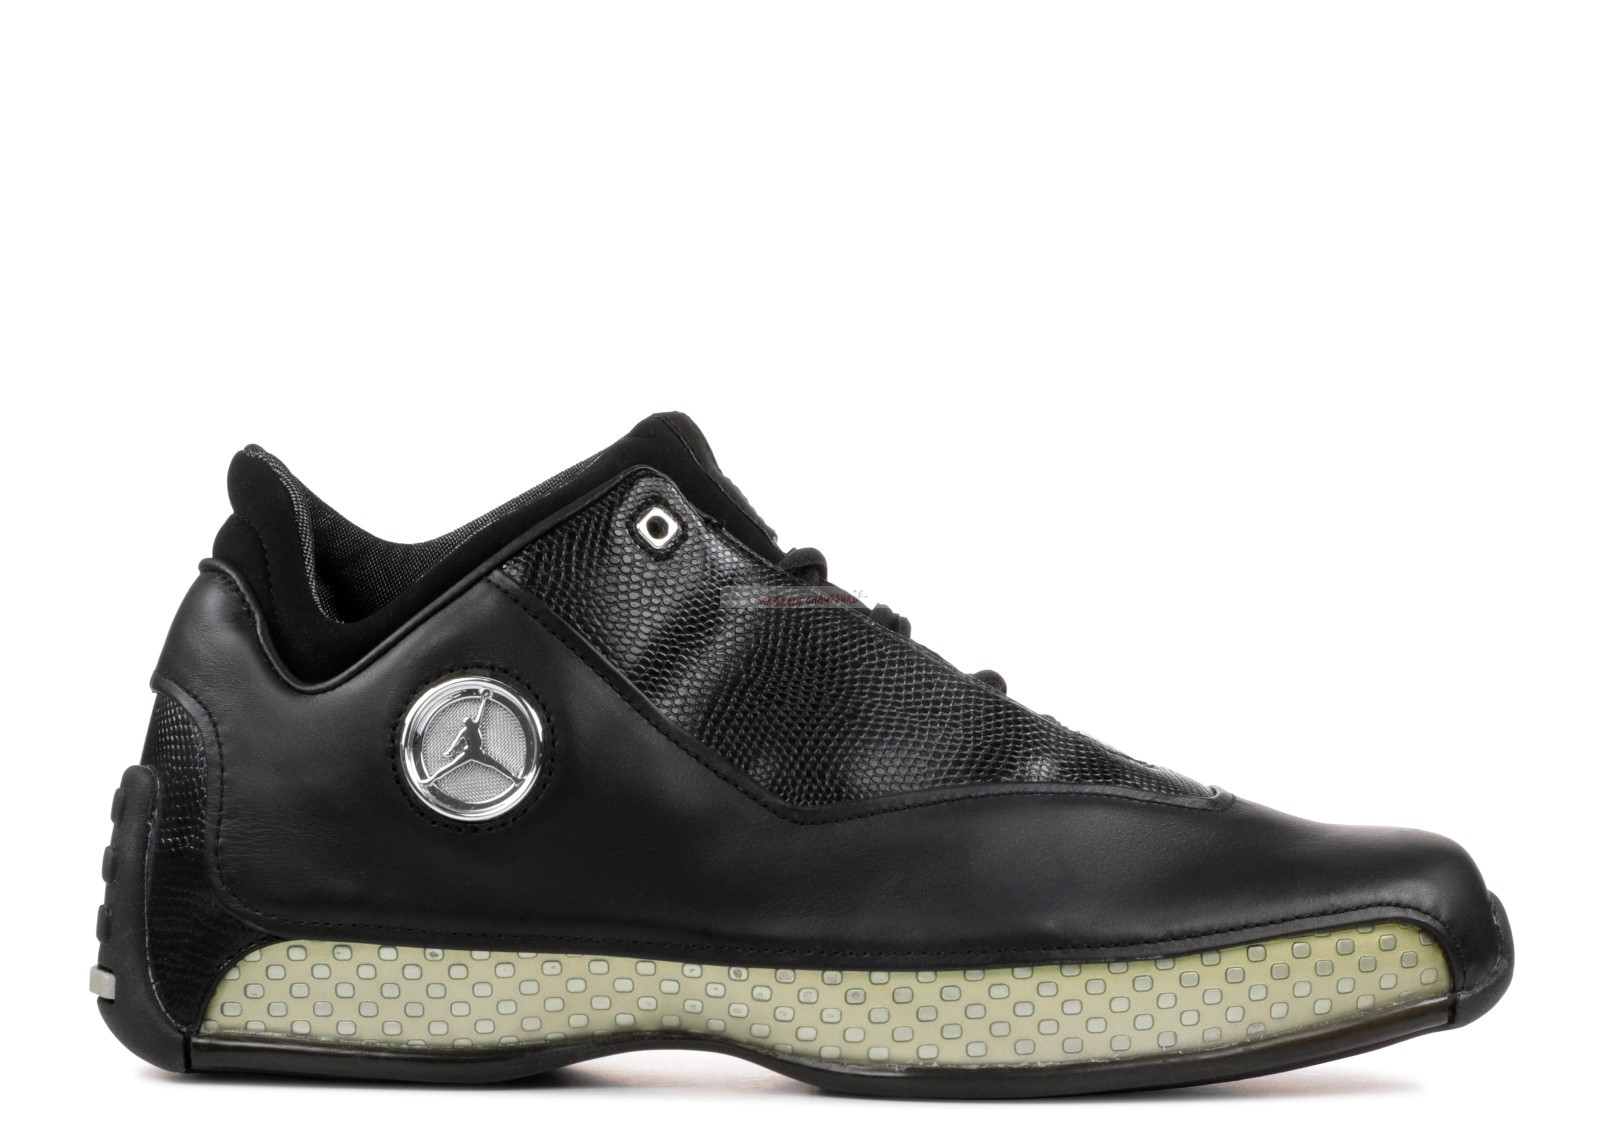 Air Jordan 18 Low Noir (306151-001) Chaussure de Basket